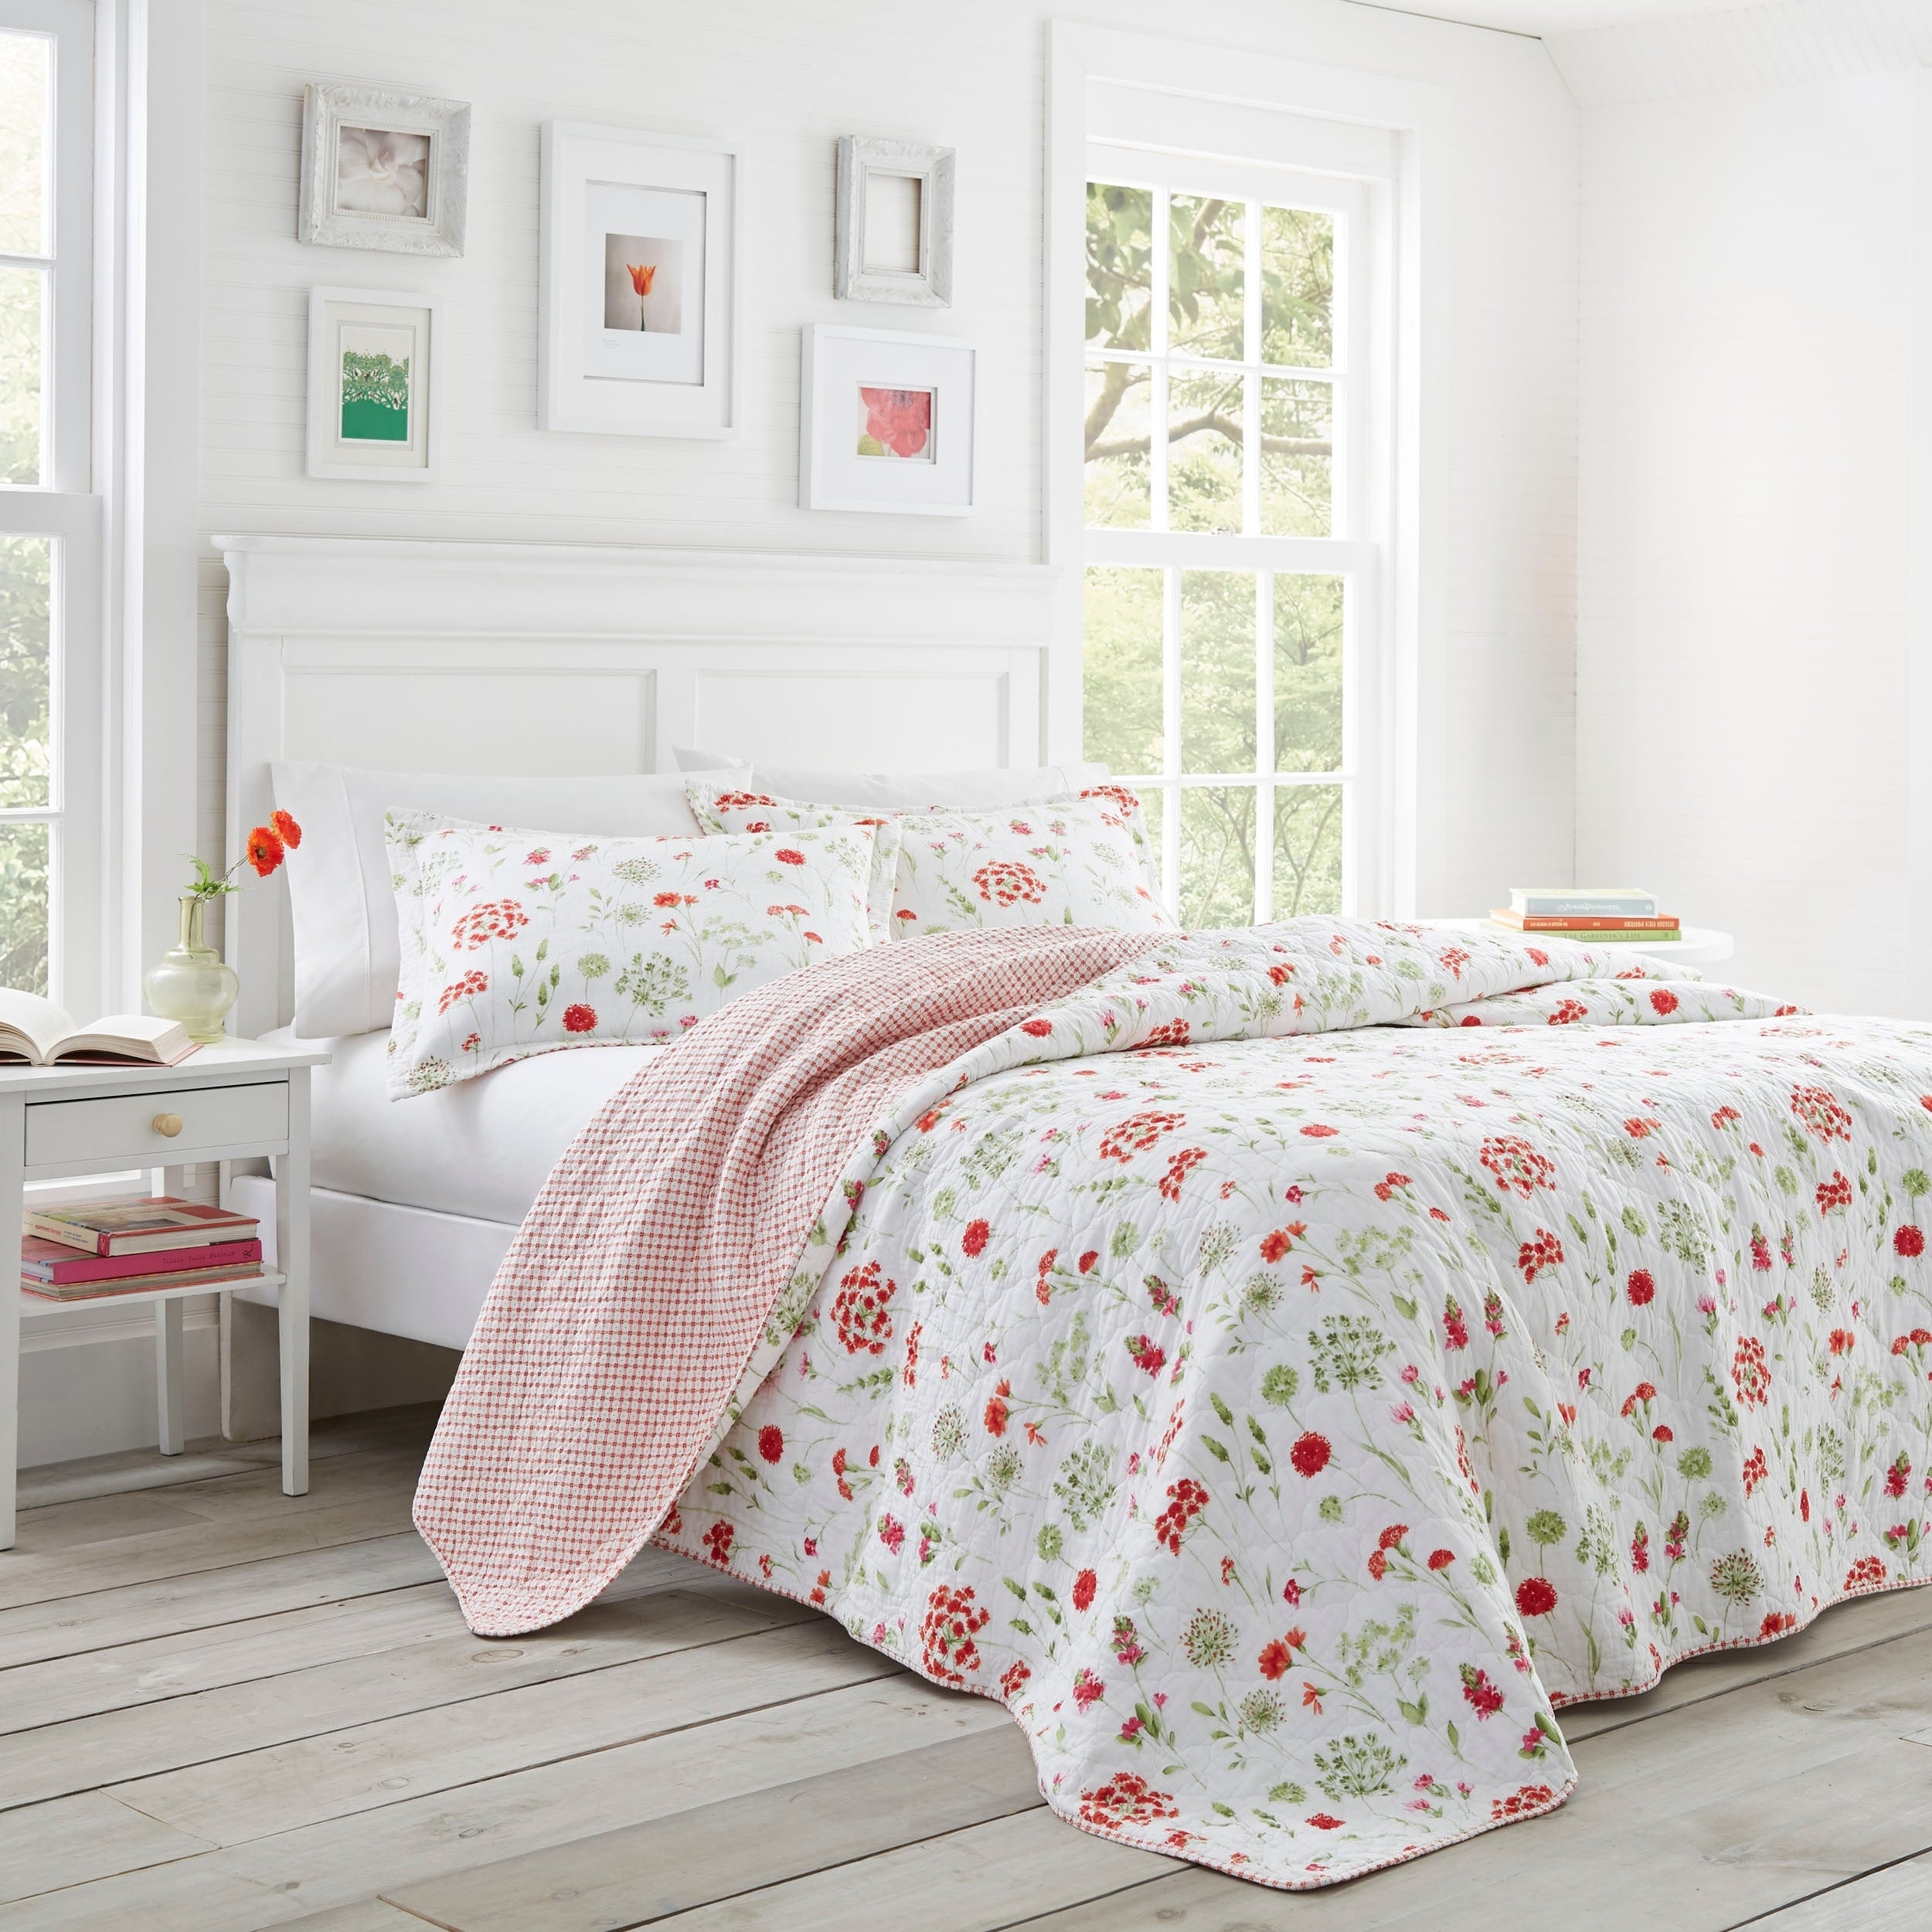 Excellent Laura Ashley Libby Quilt Set Download Free Architecture Designs Scobabritishbridgeorg